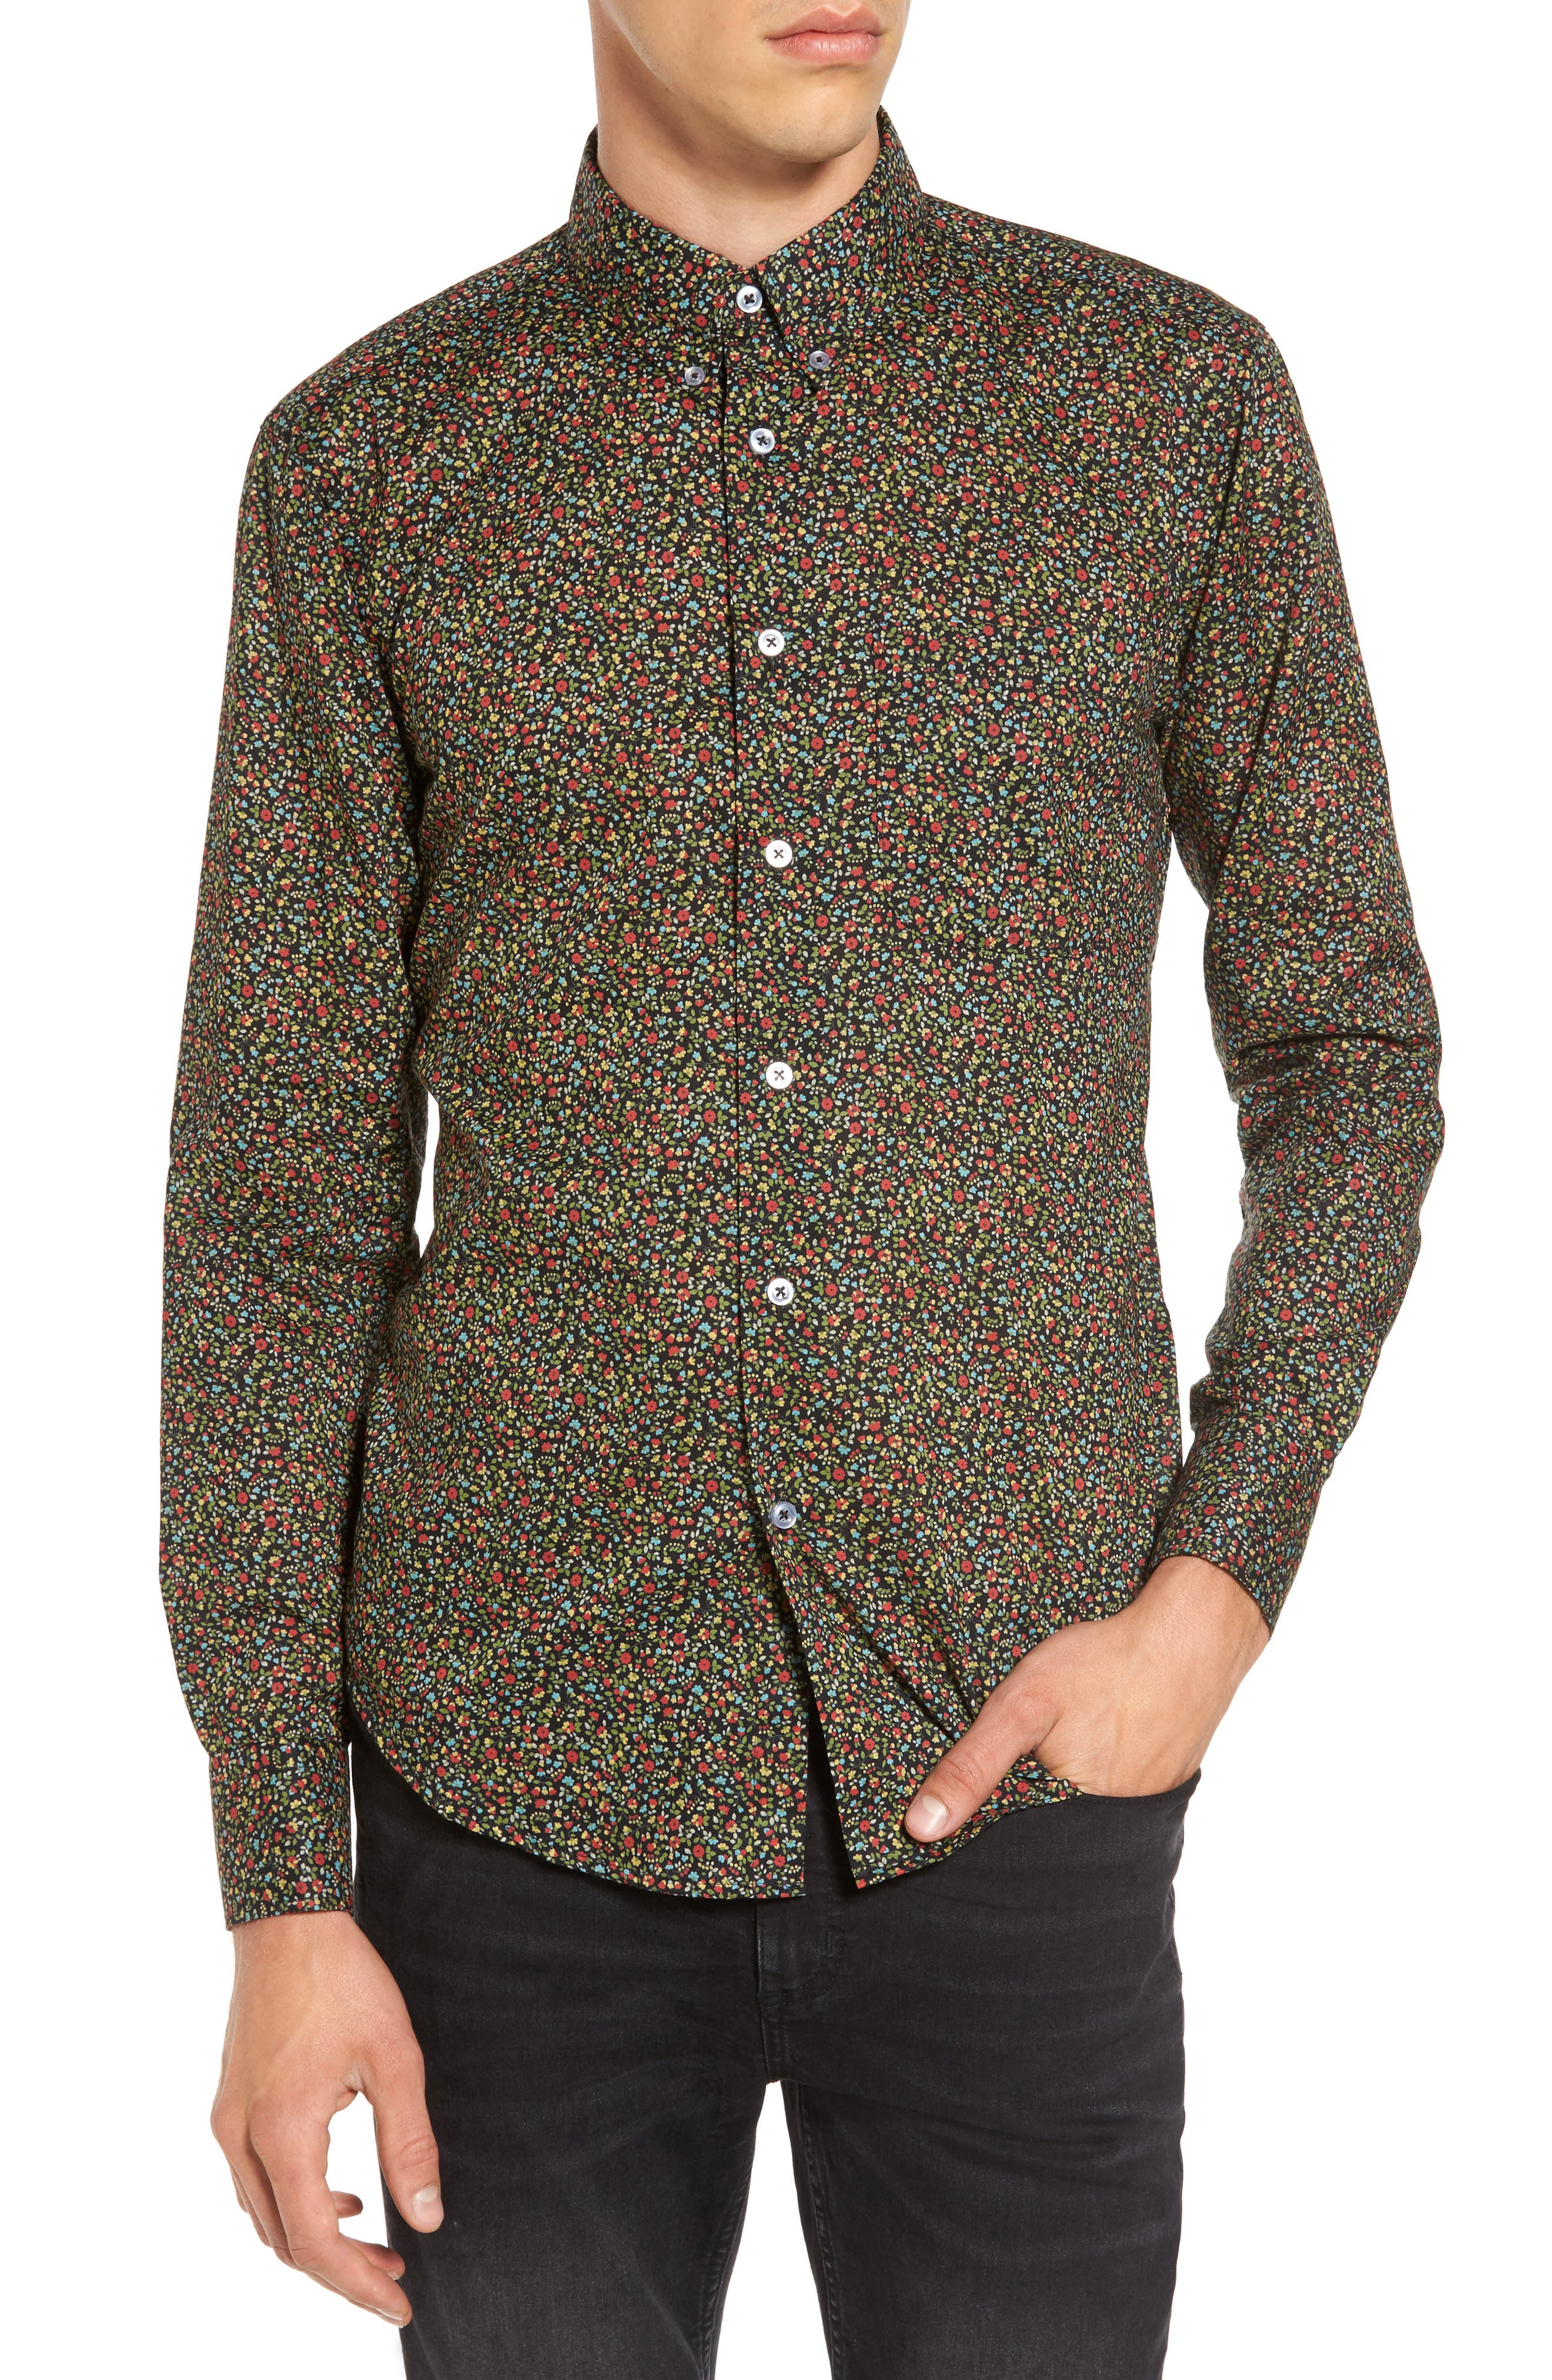 Naked & Famous Floral Shirt,                             Main thumbnail 1, color,